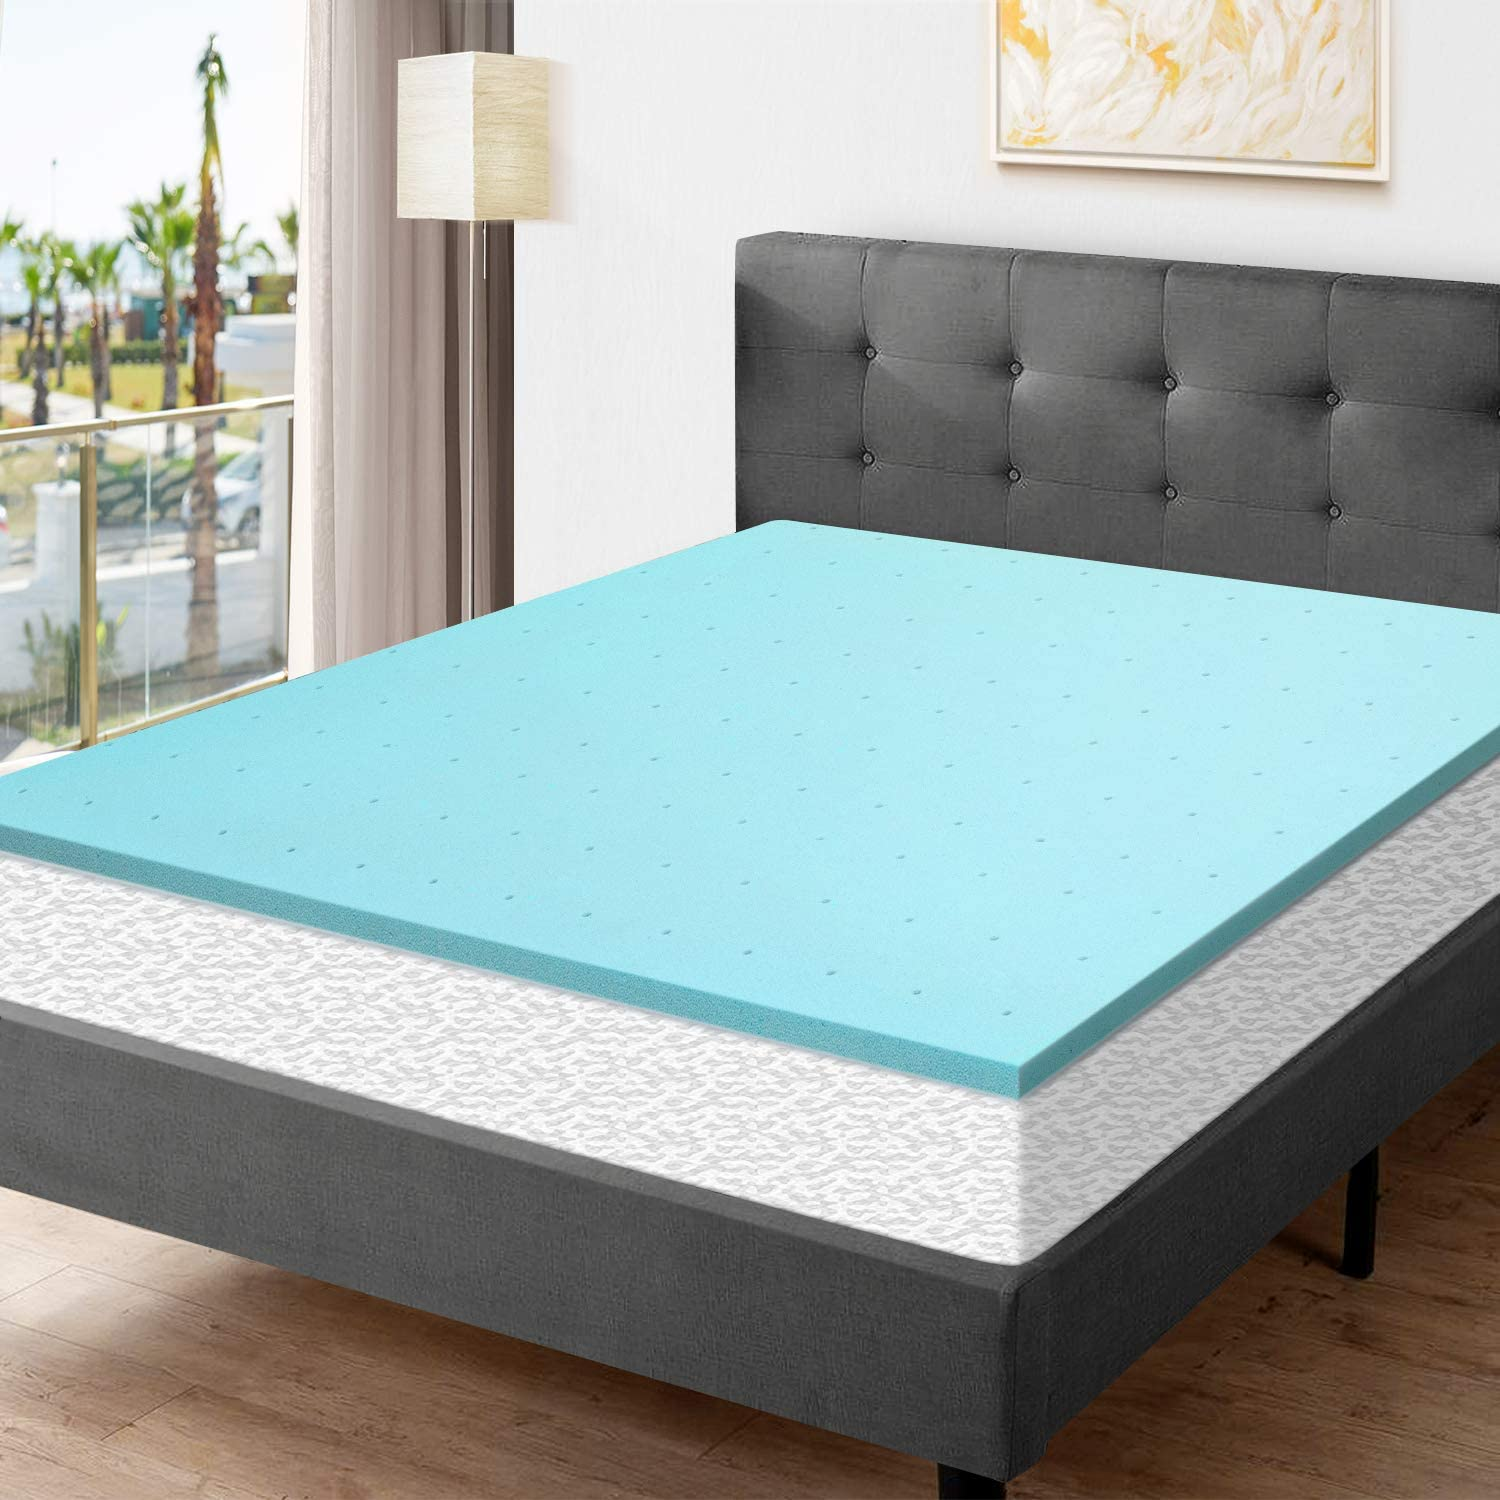 Amazon.com: Momend 2 Inch Full Size Memory Foam Mattress Pad